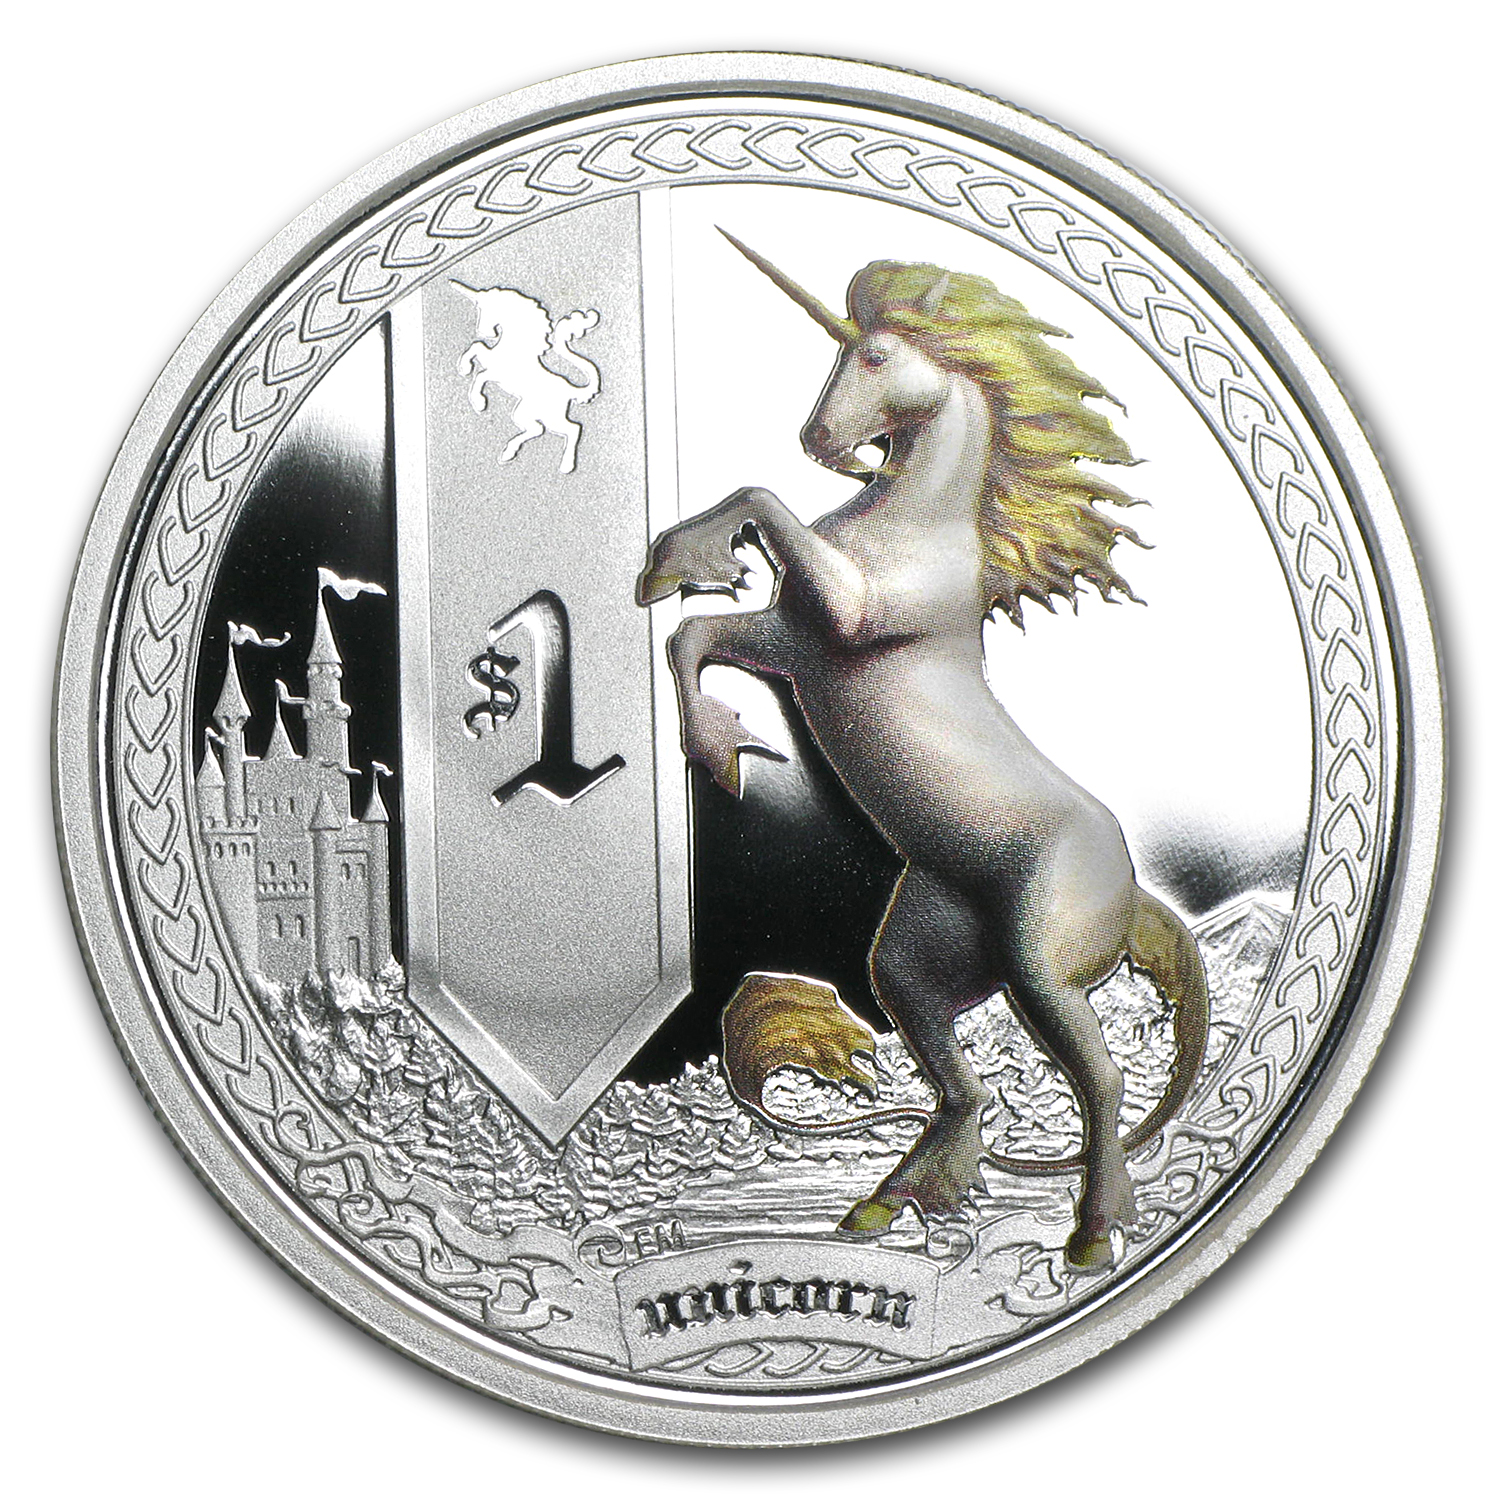 2013 1 oz Proof Silver Mythical Creatures - Unicorn